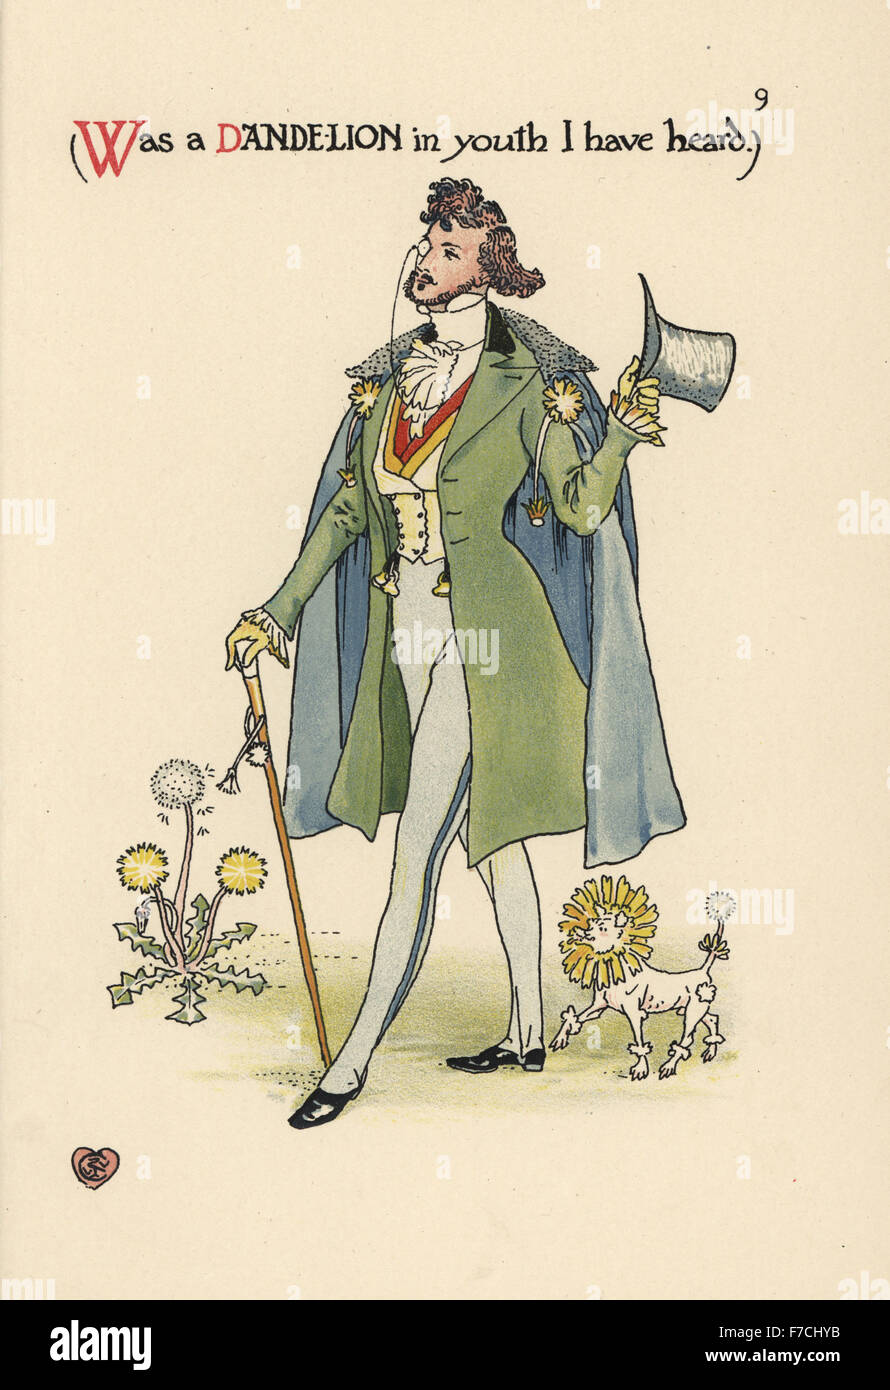 Flower fairy of a dandelion, Taraxacum officinale, as a fashionable young dandy with poodle. Chromolithograph after - Stock Image